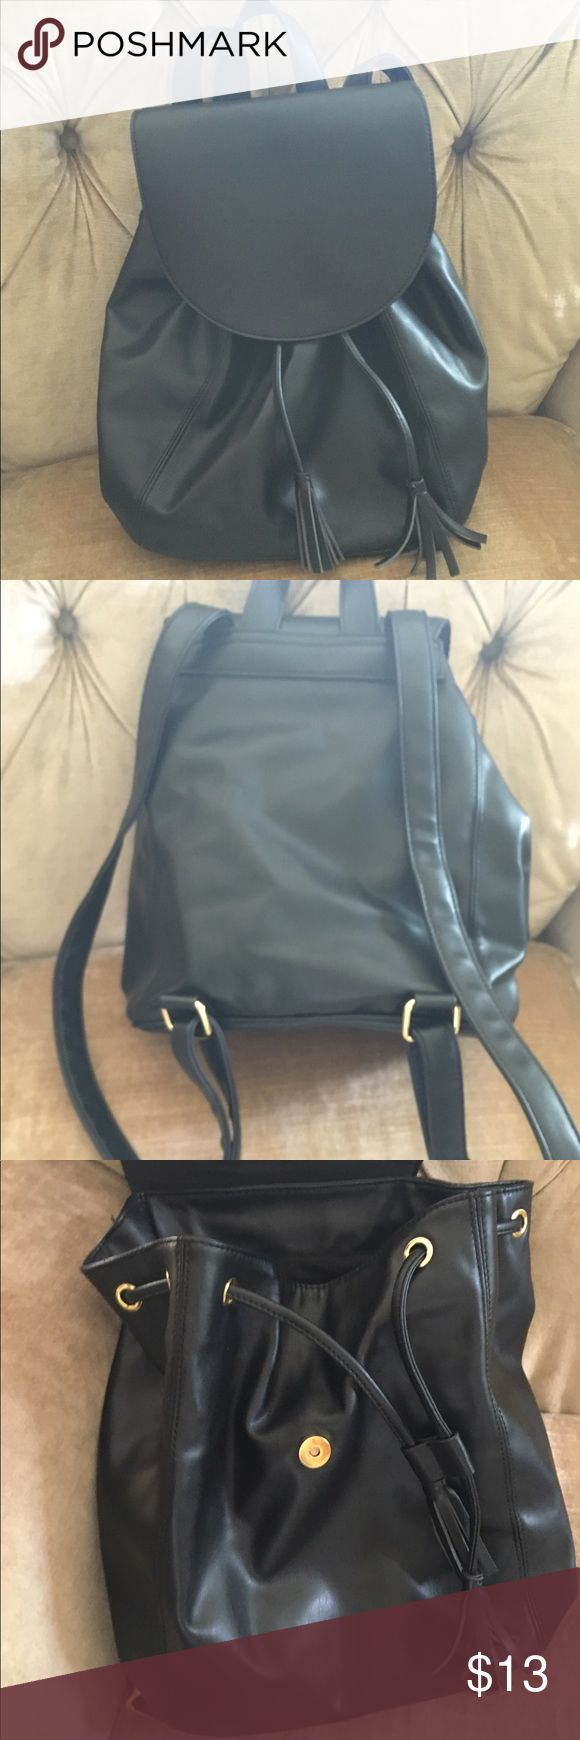 Faux leather backpack Old navy faux leather backpack / purse. Black with gold colored buckles. In like new condition! Old Navy Bags Backpacks